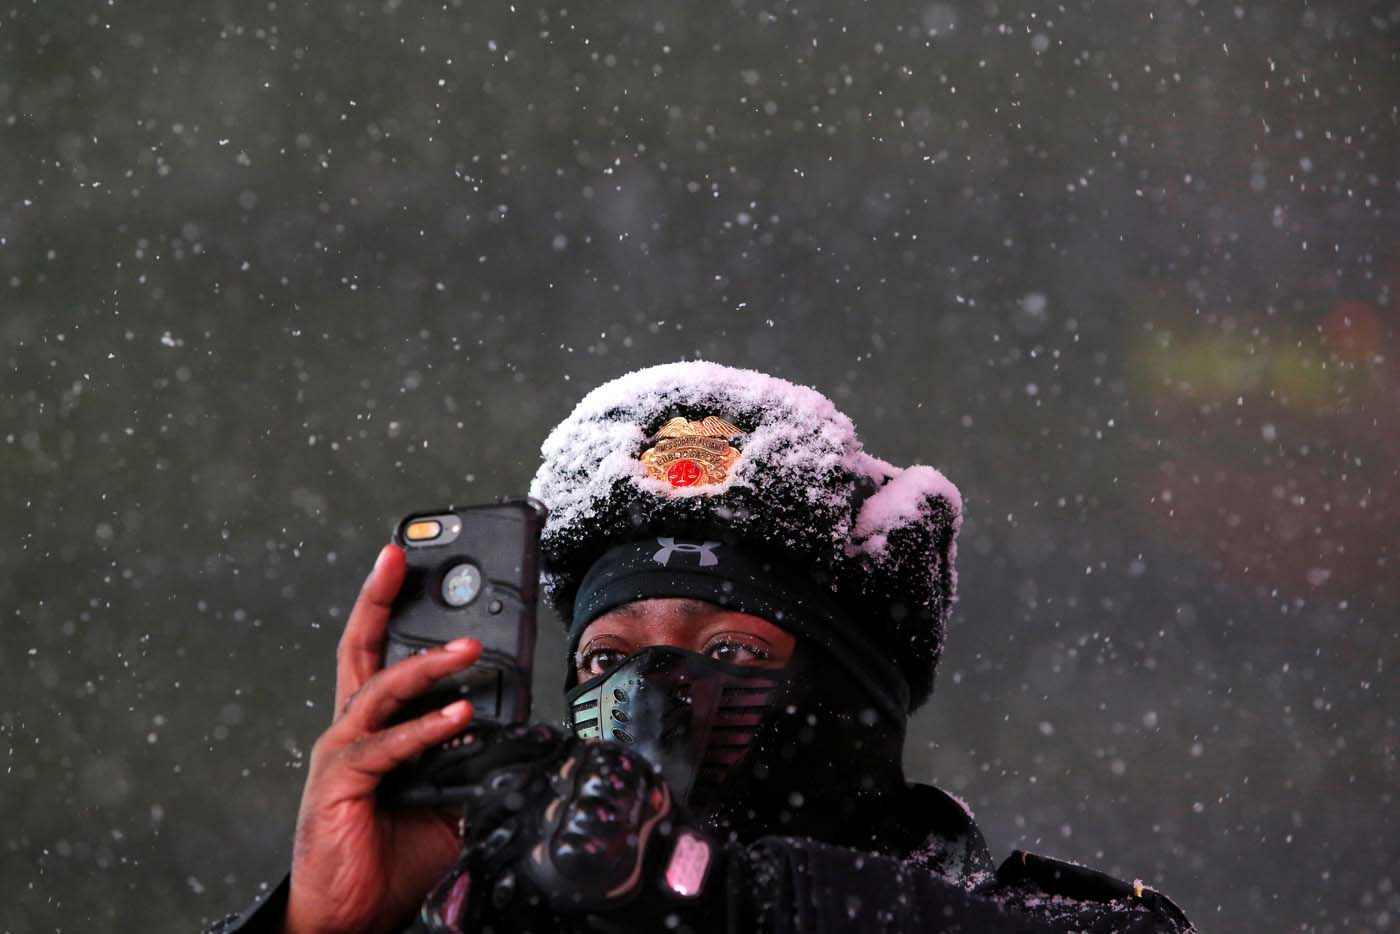 Times Square Public Safety Sergeant Baldwin Davis captures falling snow with his cellular device in Times Square in Manhattan, New York, U.S., March 14, 2017. REUTERS/Andrew Kelly